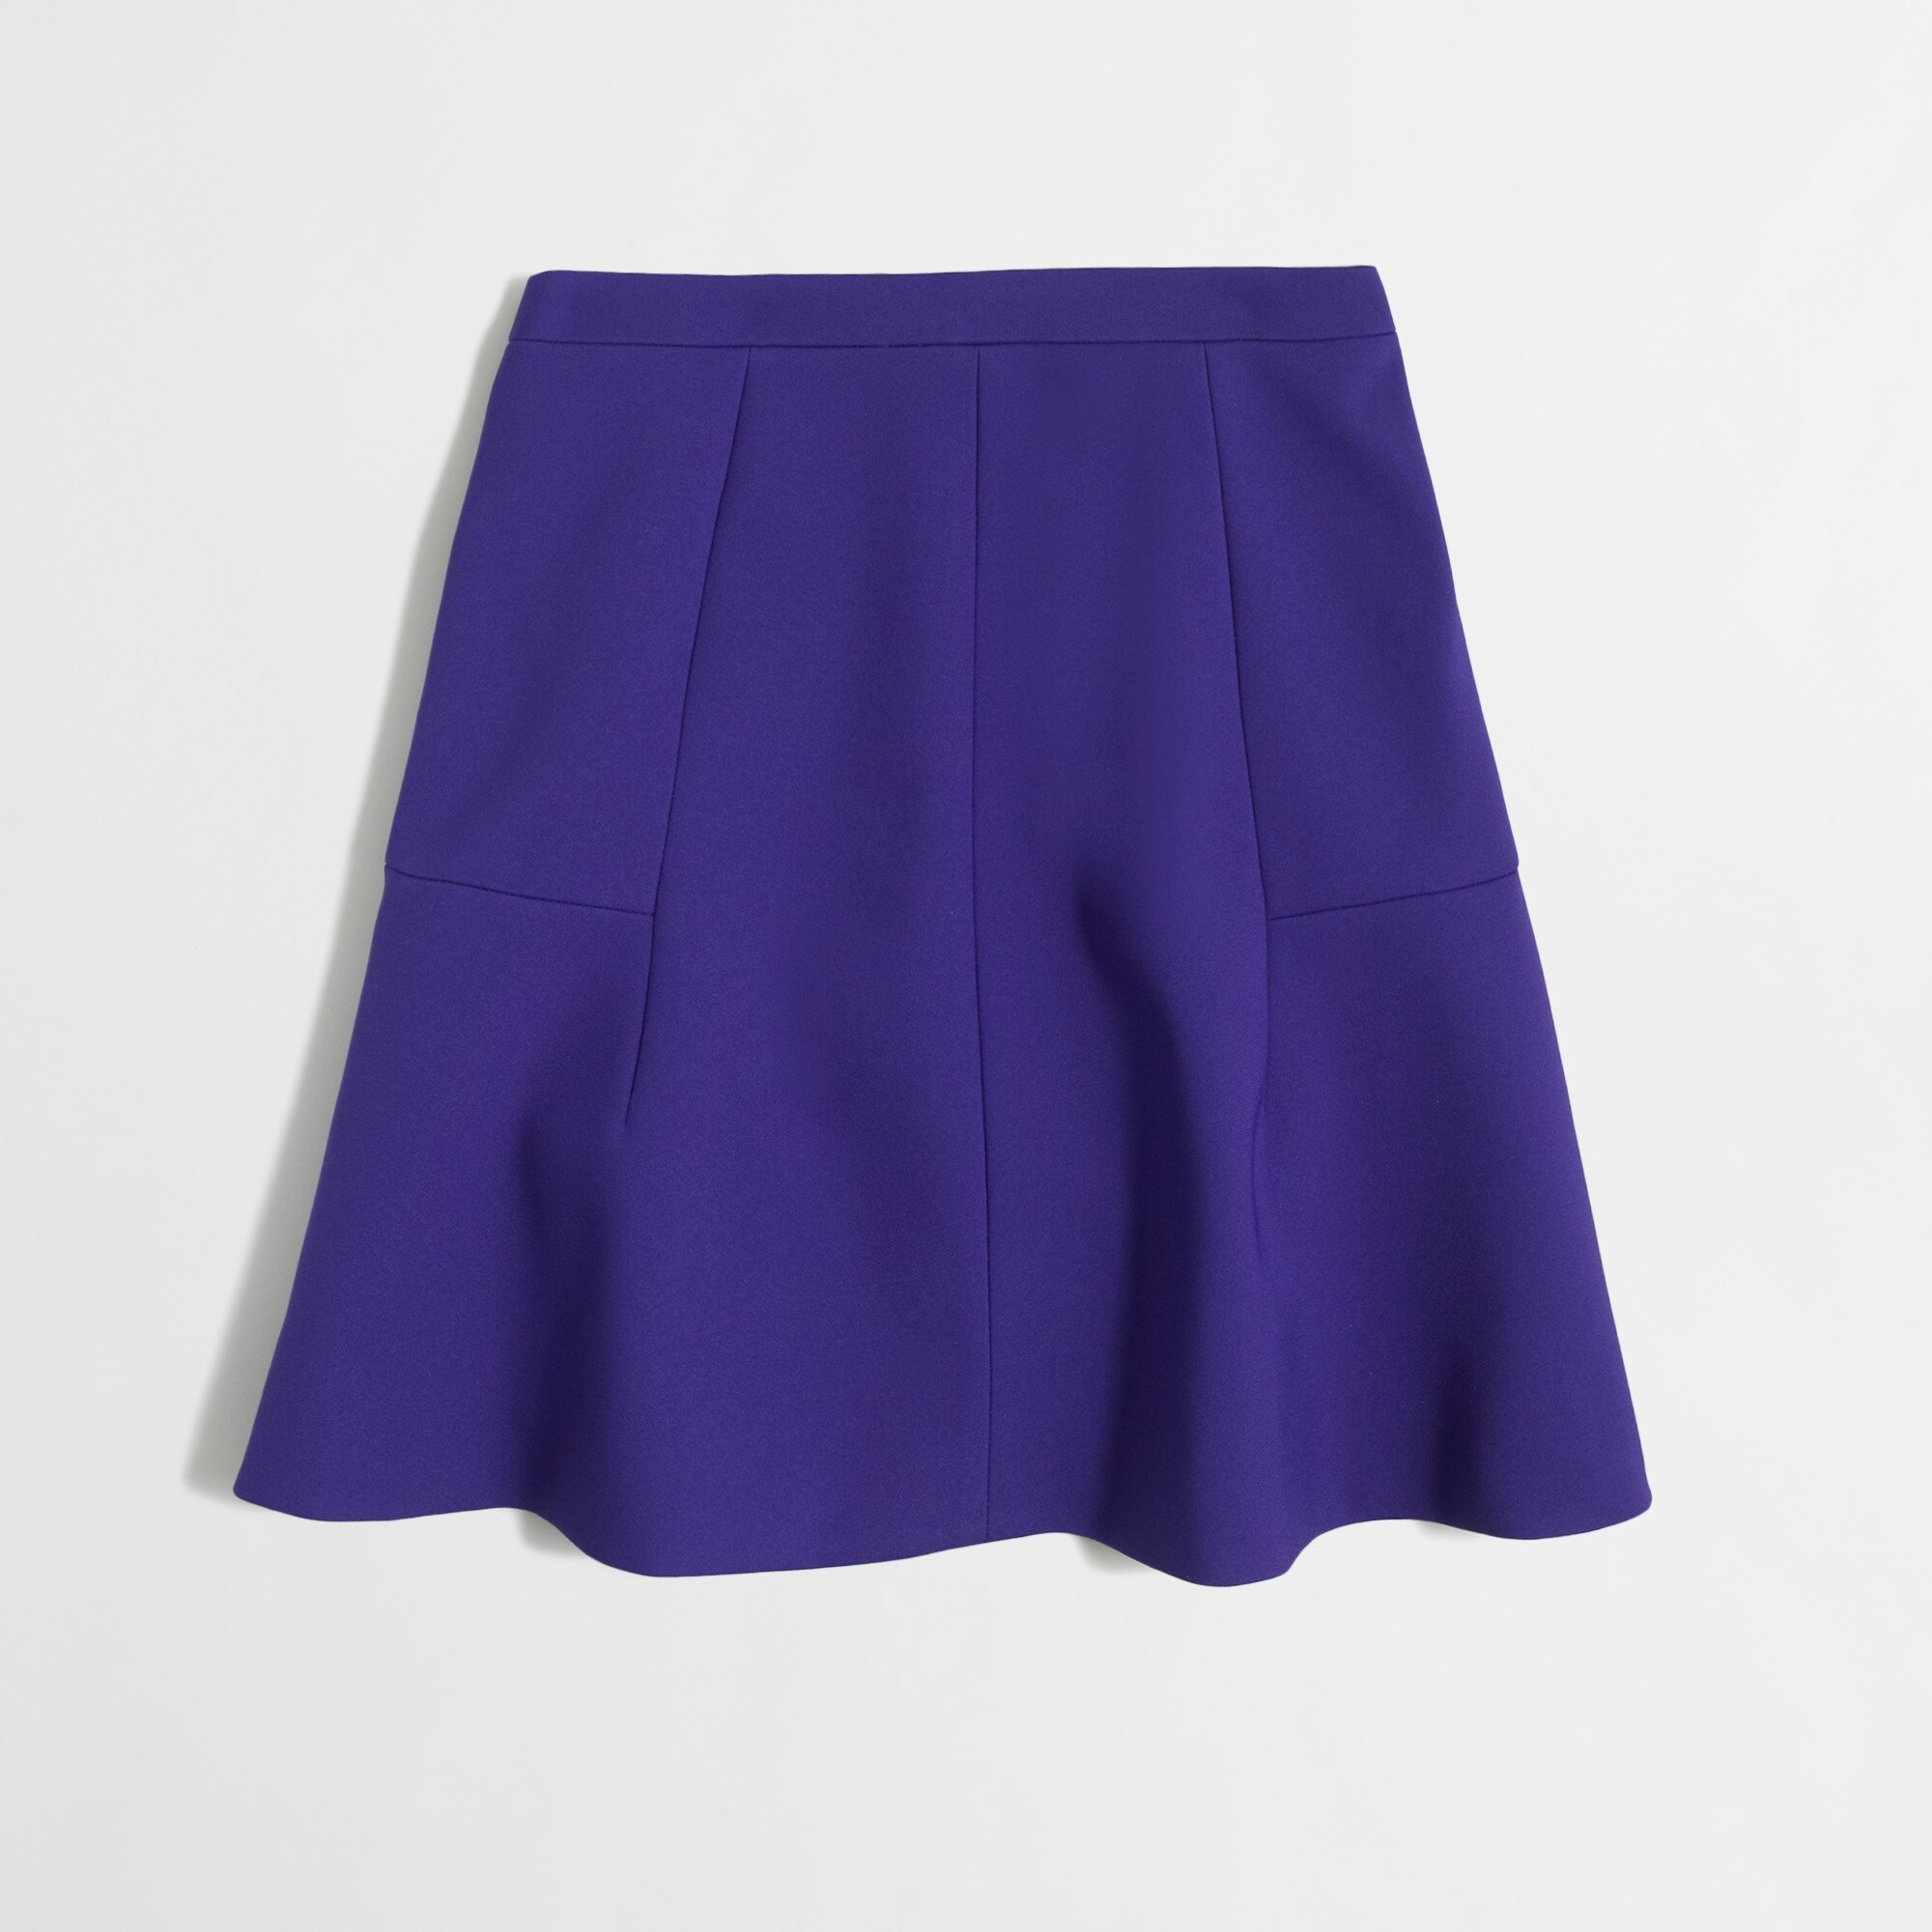 Image 1 for Flared skirt